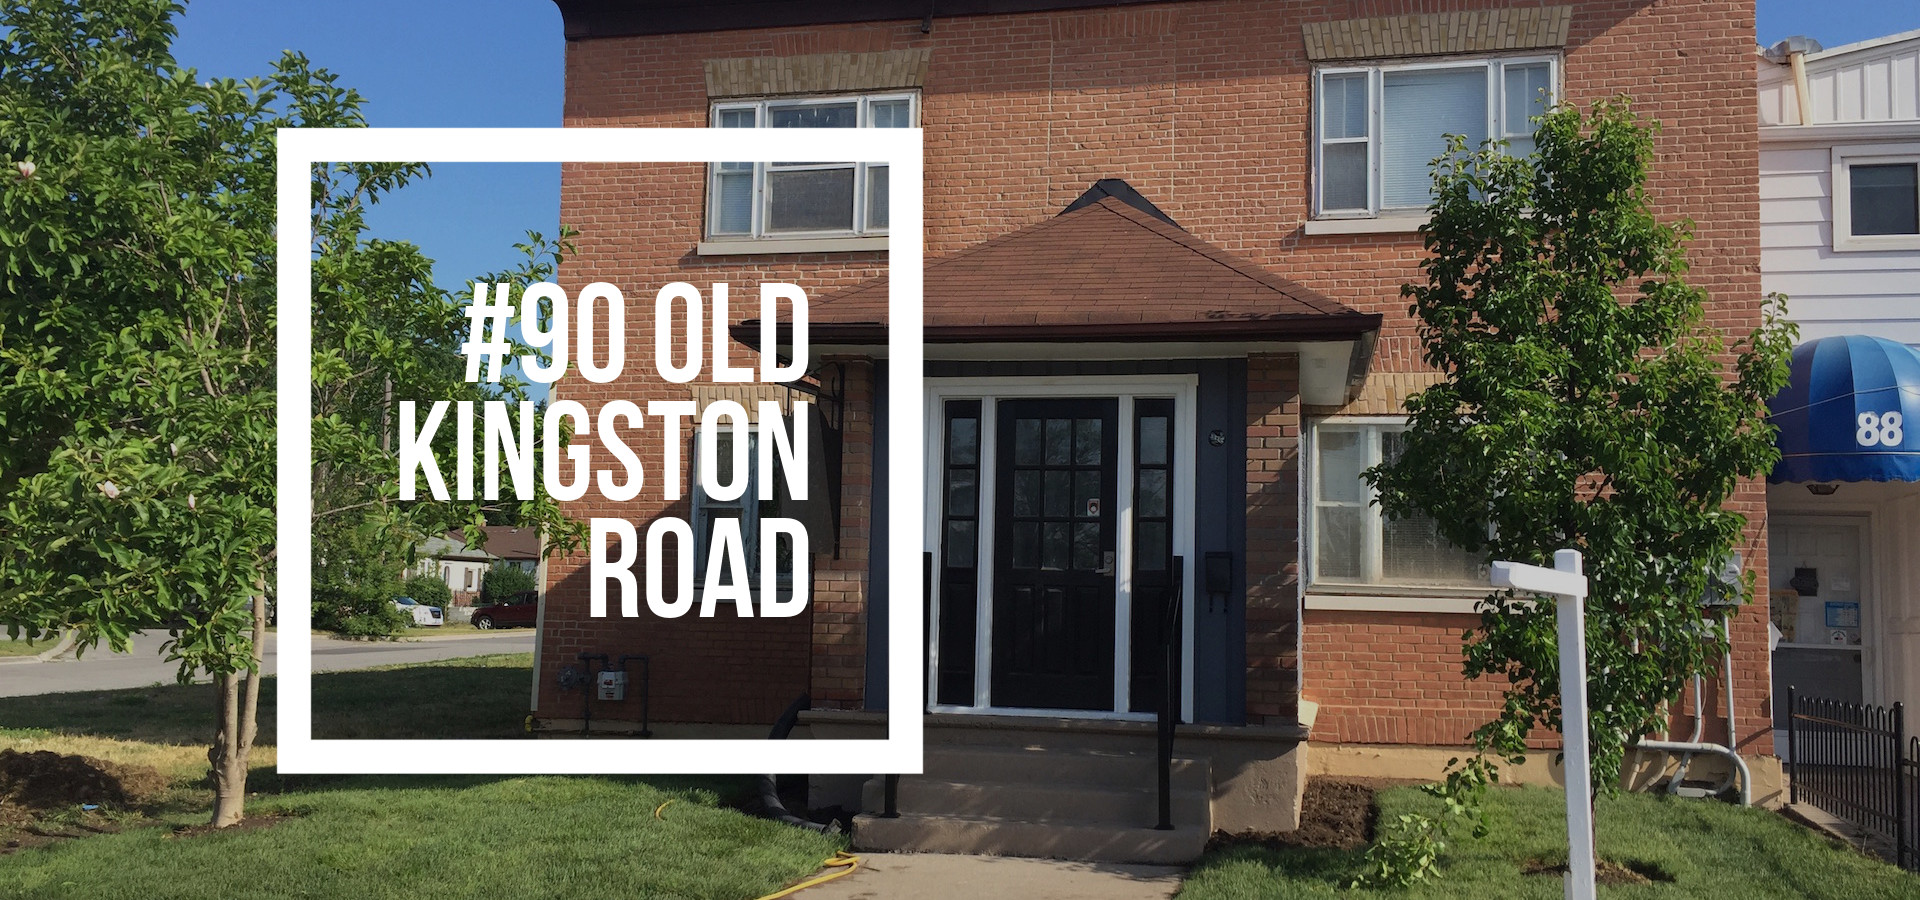 90 Old Kingston Road